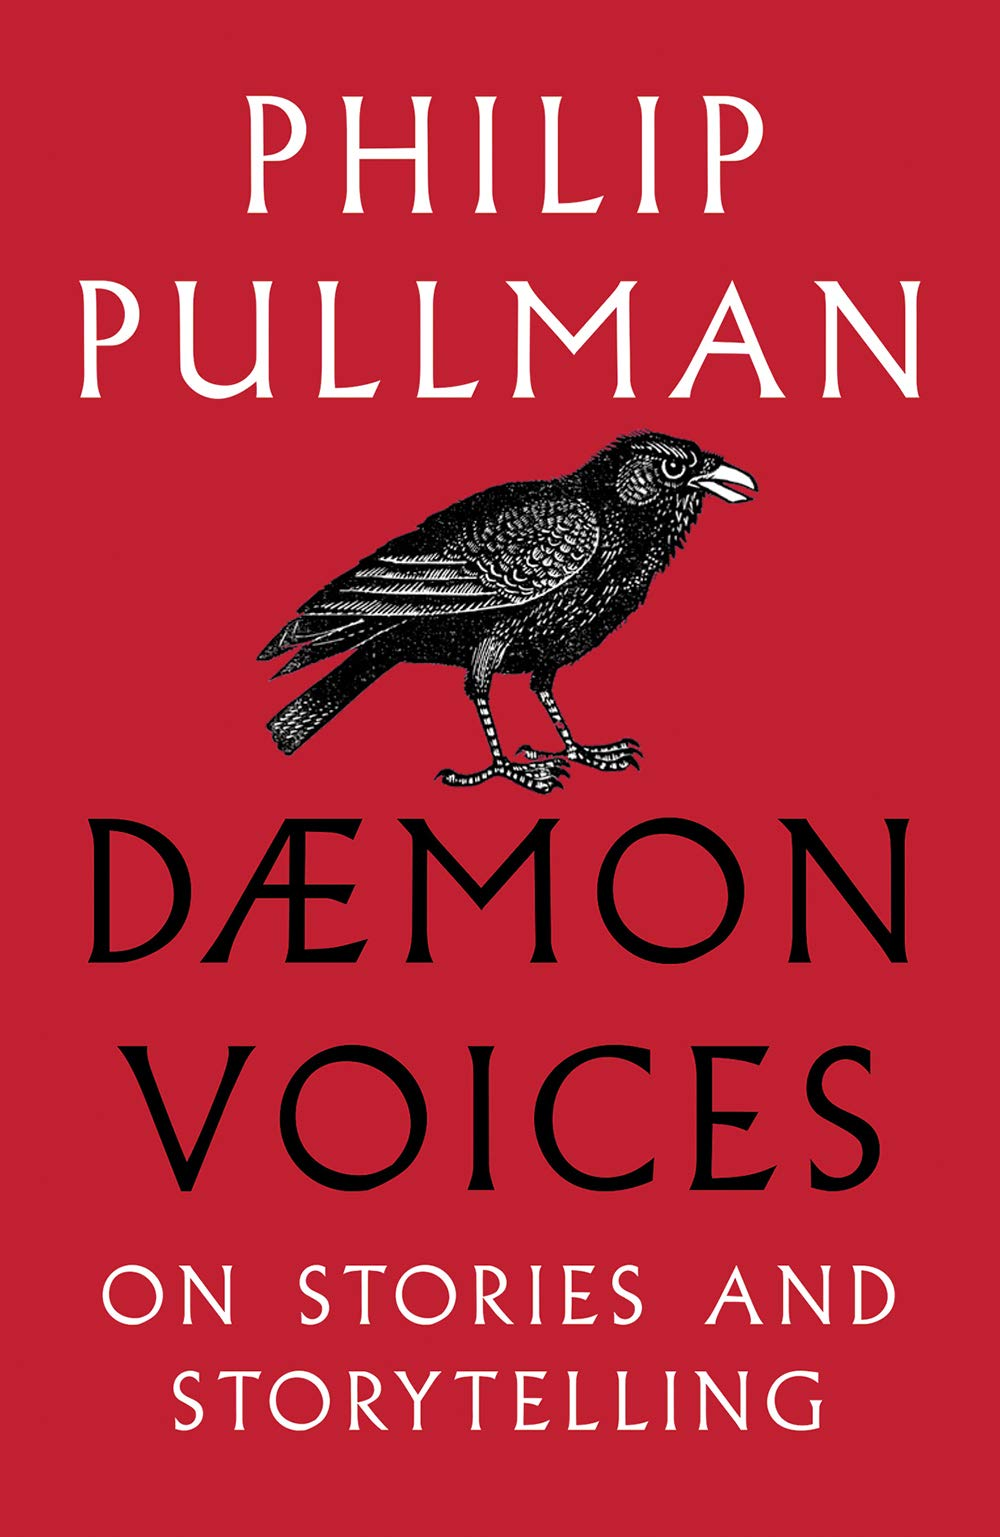 Daemon Voices: On Stories and Storytelling by Philip Pullman | 9781910989548